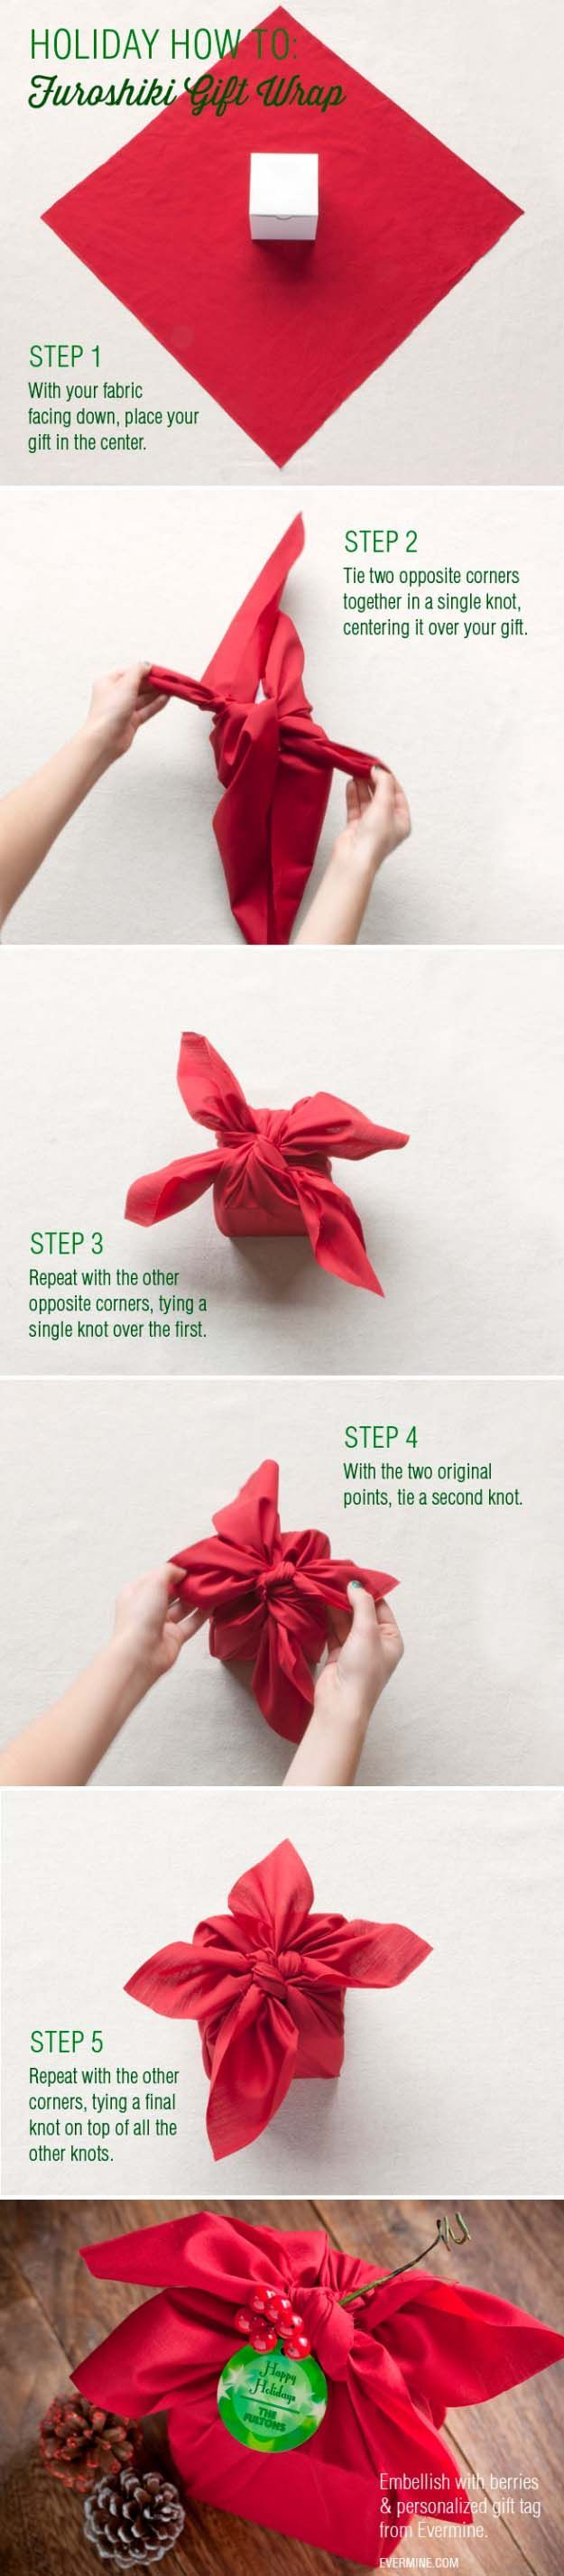 DIY Gift Wrapping Ideas - How To Wrap A Present - Tutorials, Cool Ideas and Instructions   Cute Gift Wrap Ideas for Christmas, Birthdays and Holidays   Tips for Bows and Creative Wrapping Papers    Furoshiki Gift Wrap     http://diyjoy.com/how-to-wrap-a-gift-wrapping-ideas